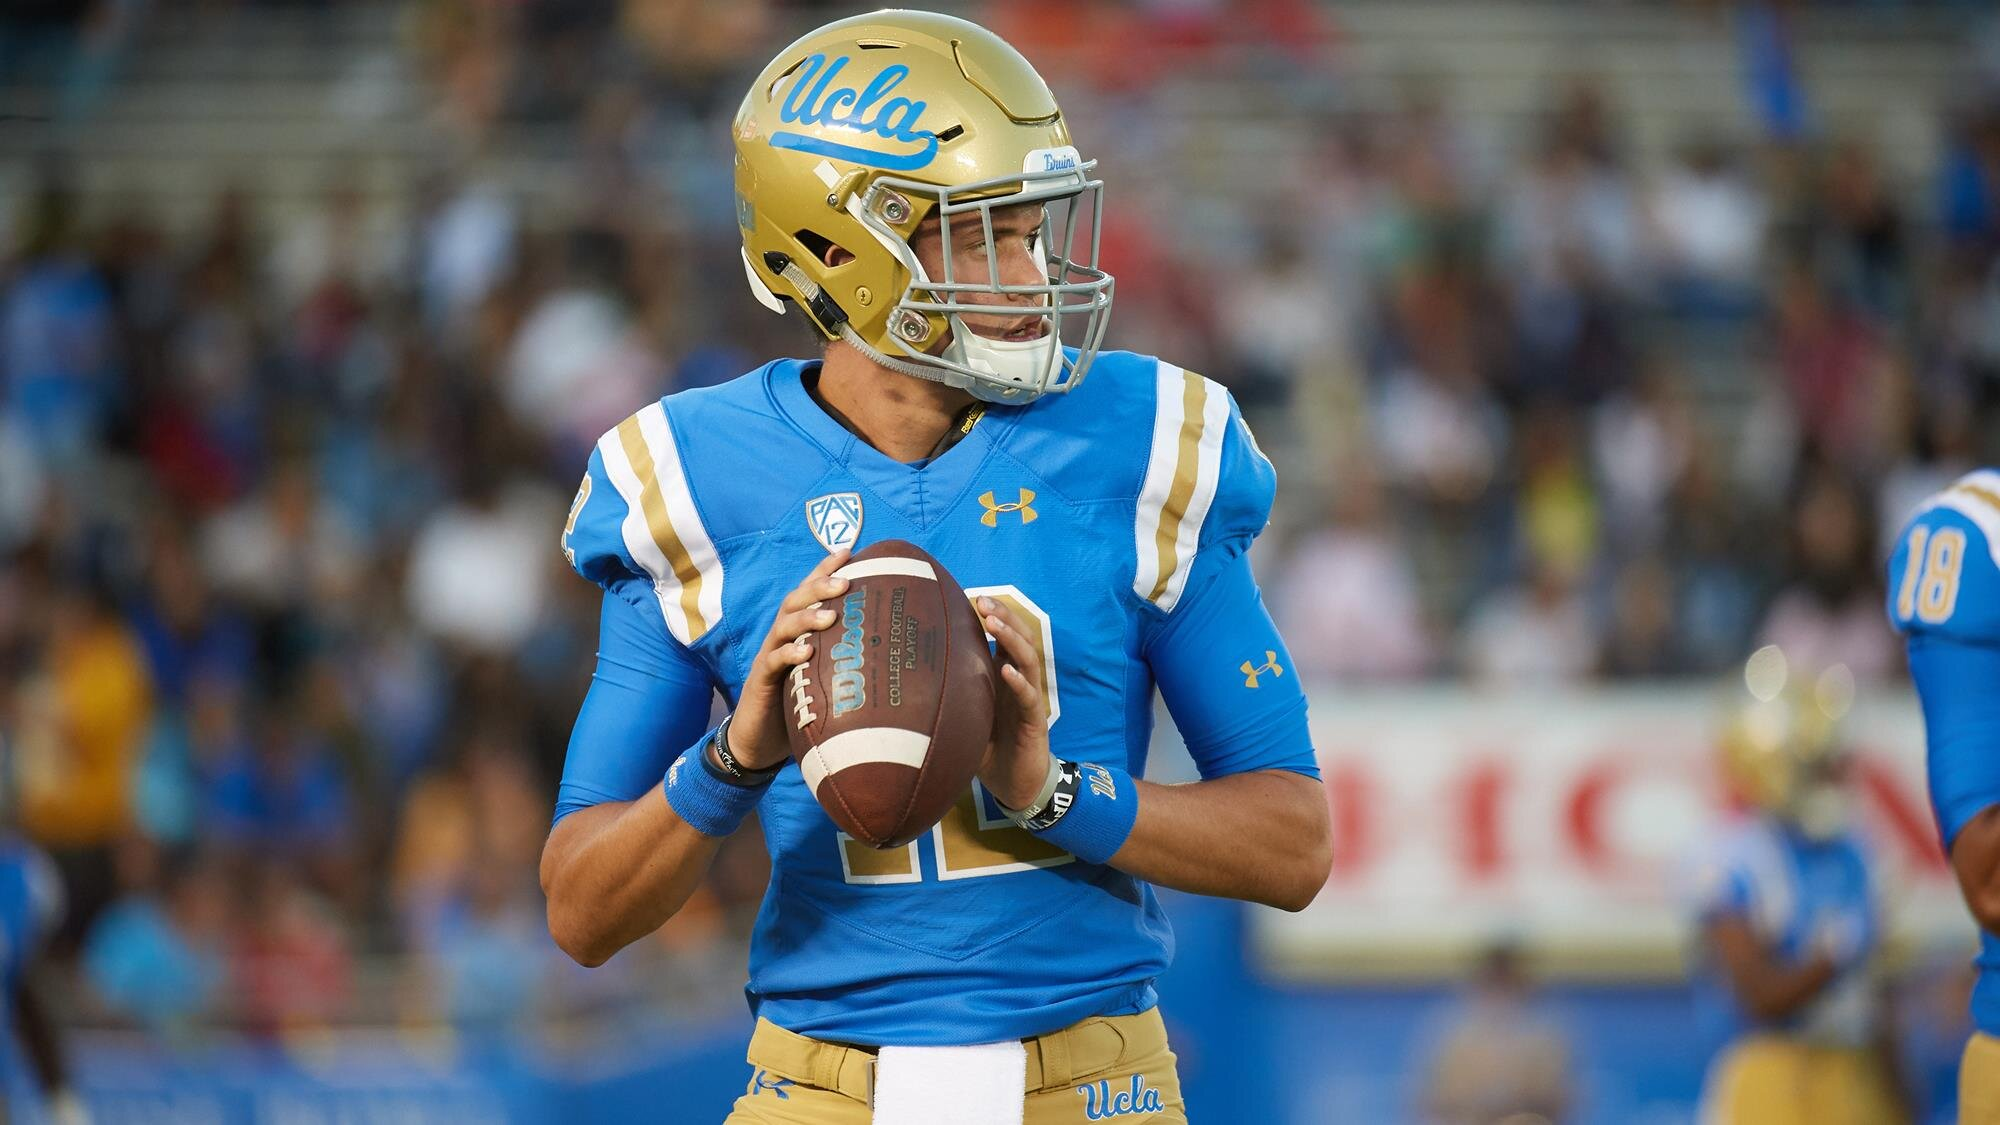 UCLA QB Austin Burton completed 27 of 41 passes for 236 yards. (Courtesy Photo)